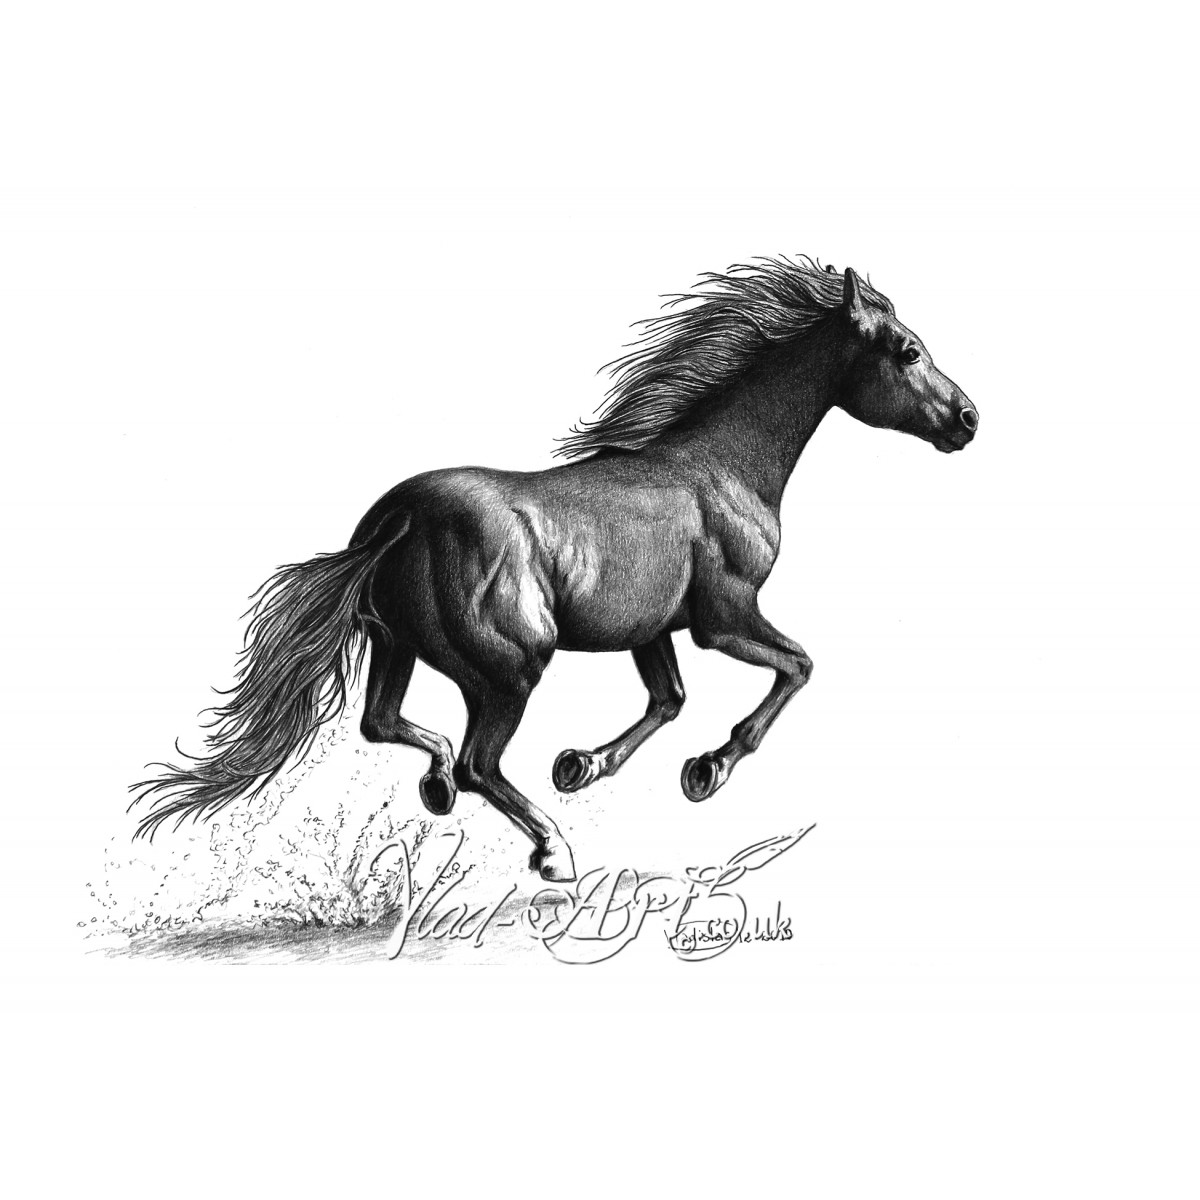 Running wild mustang pencil drawing by Vlad-Art